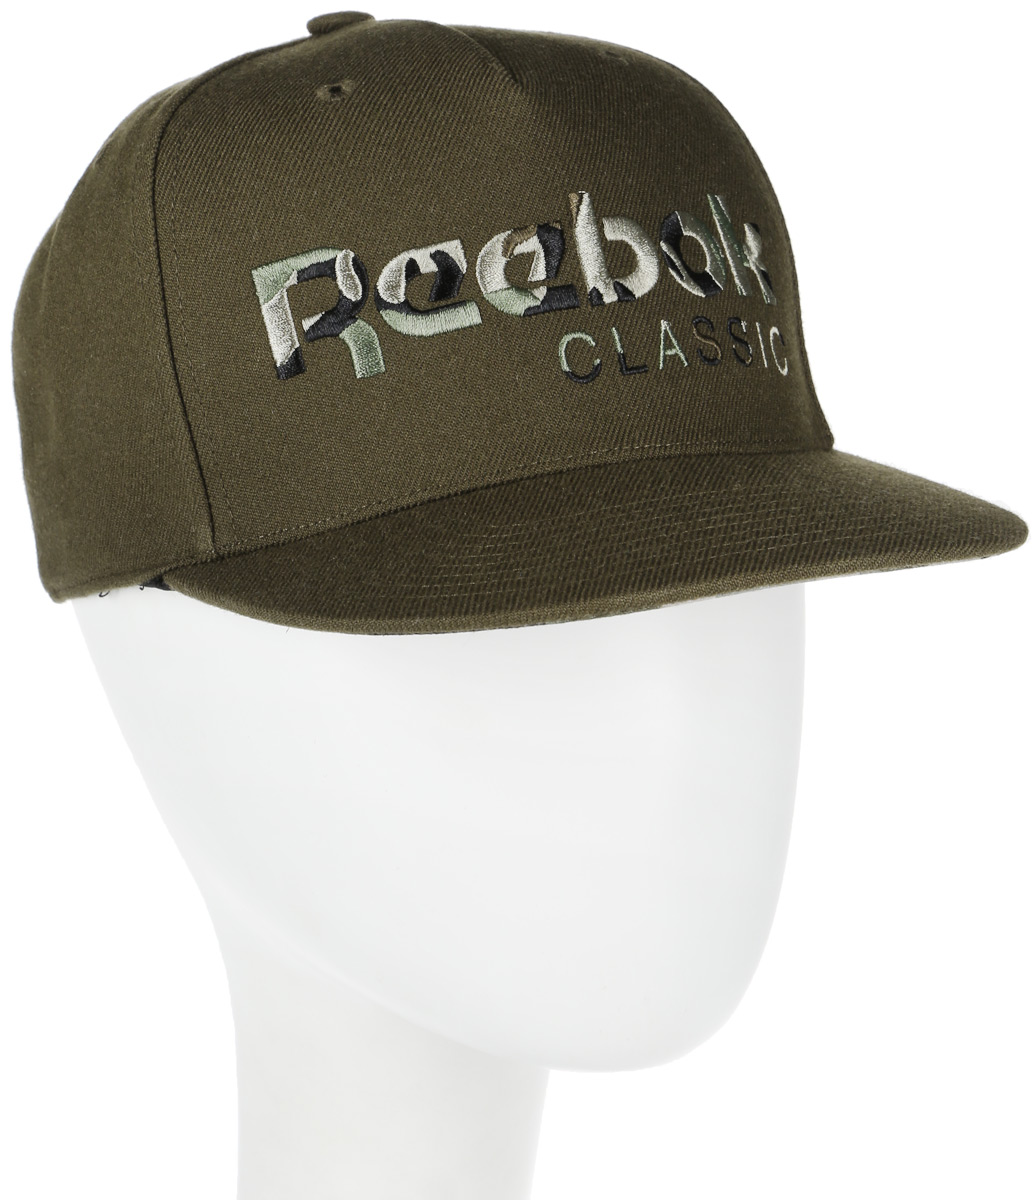 Бейсболка Reebok Cl Camo Cap, цвет: хаки. BJ9157. Размер (58/60) men women coconut palm baseball cap army camo cap baseball casquette camouflage hats for hunting fishing outdoor